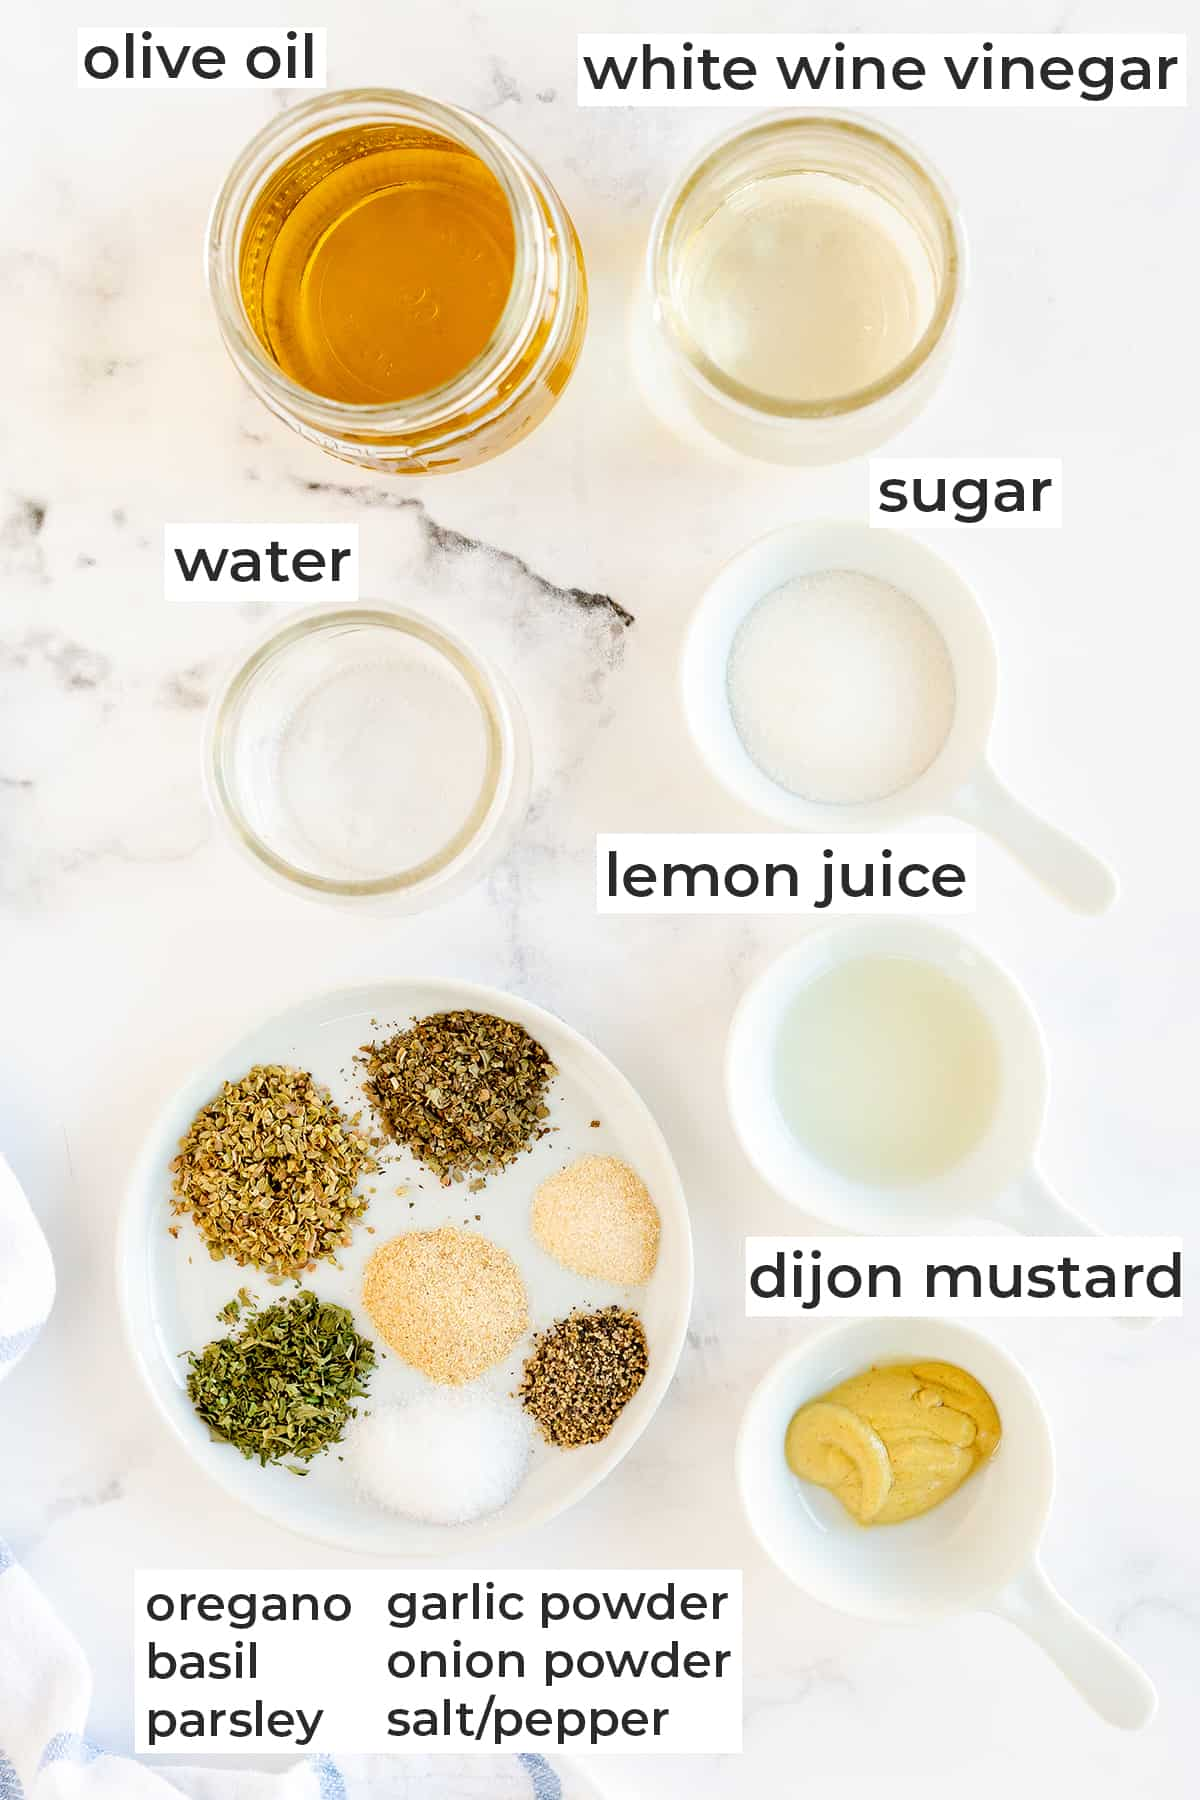 All the ingredients needed to make Homemade Italian Salad Dressing with text overlay.